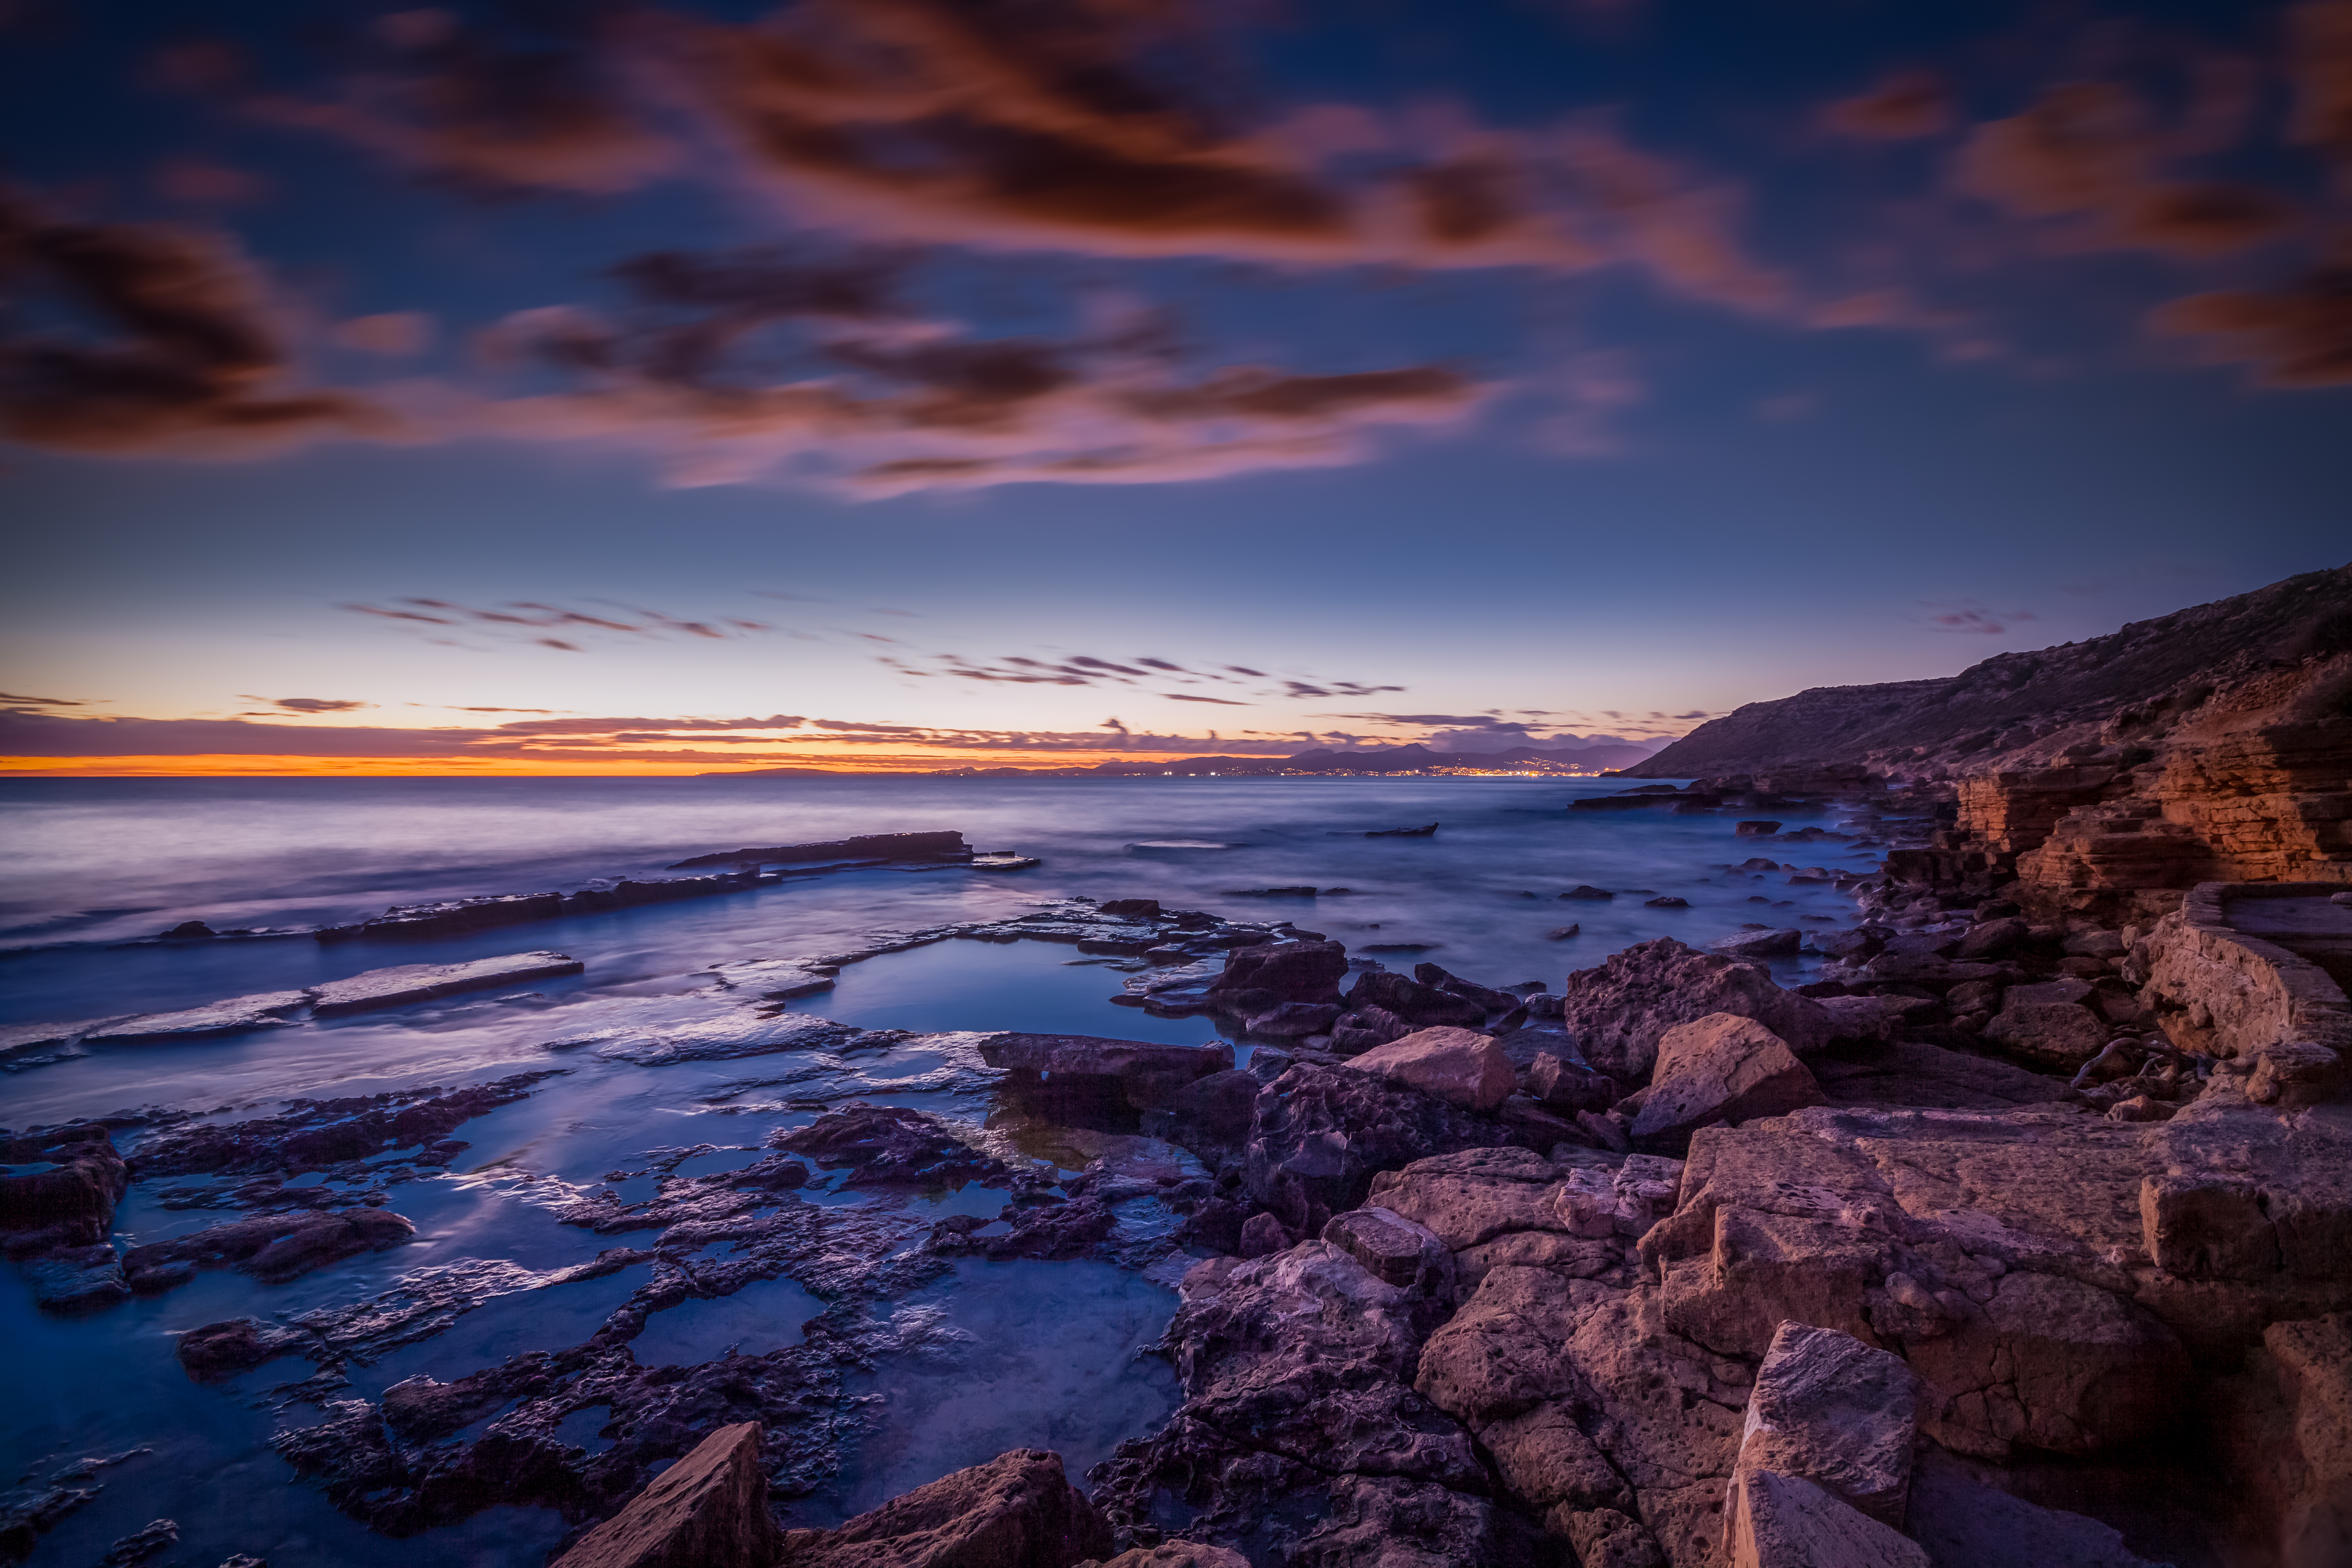 51942 download wallpaper Nature, Sea, Shore, Bank, Stones, Sunset, Spain screensavers and pictures for free